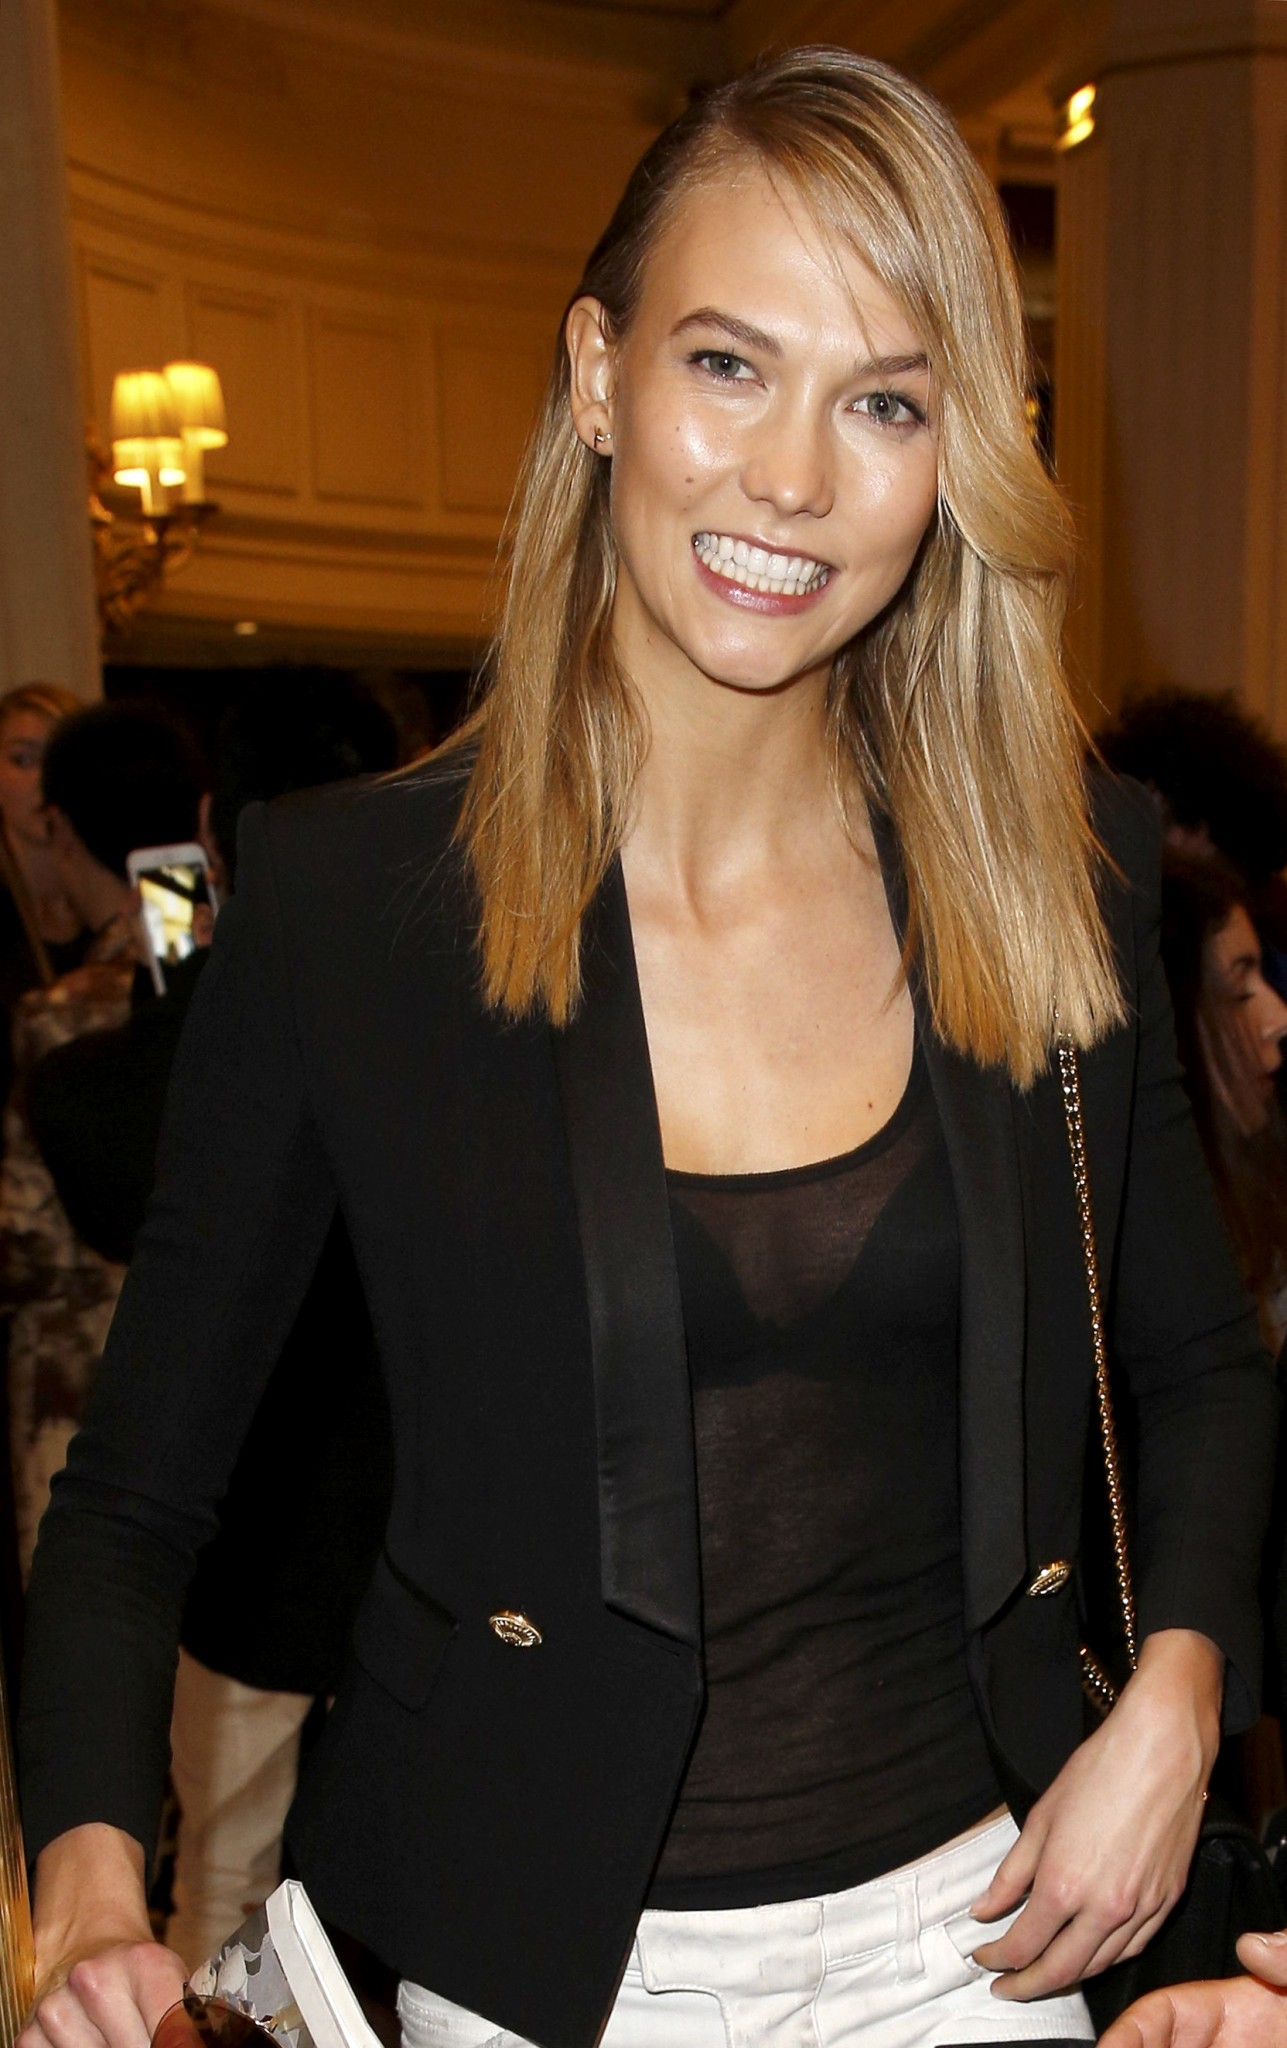 karlie-kloss-see-through-to-bra-3